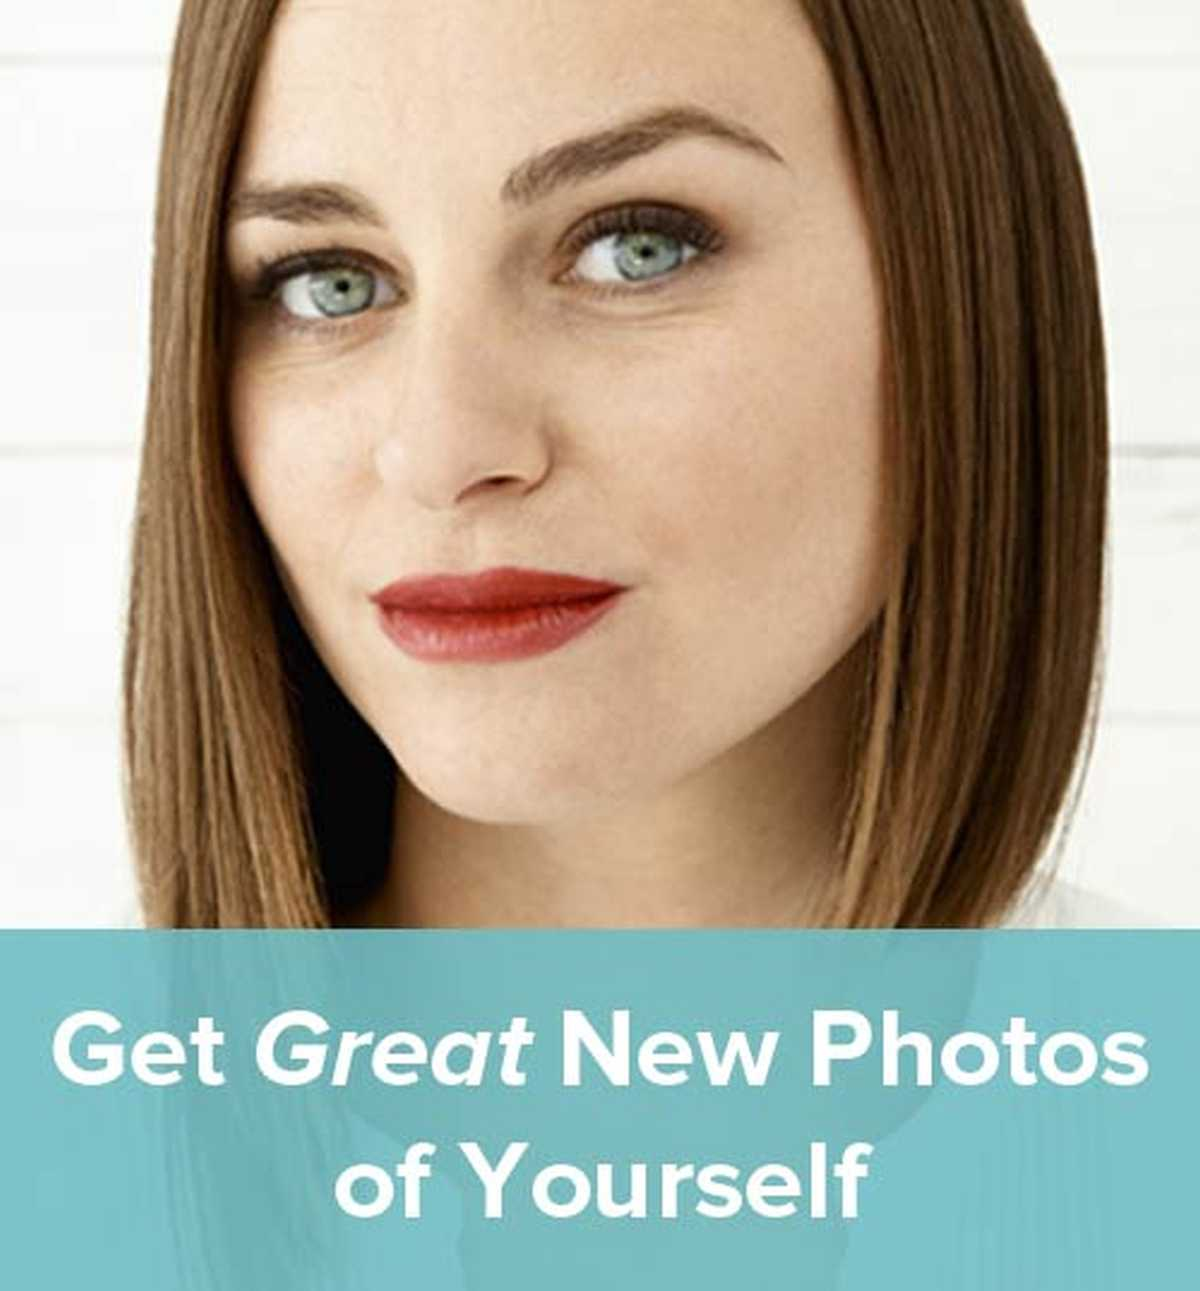 How To Get Great New Photos of Yourself